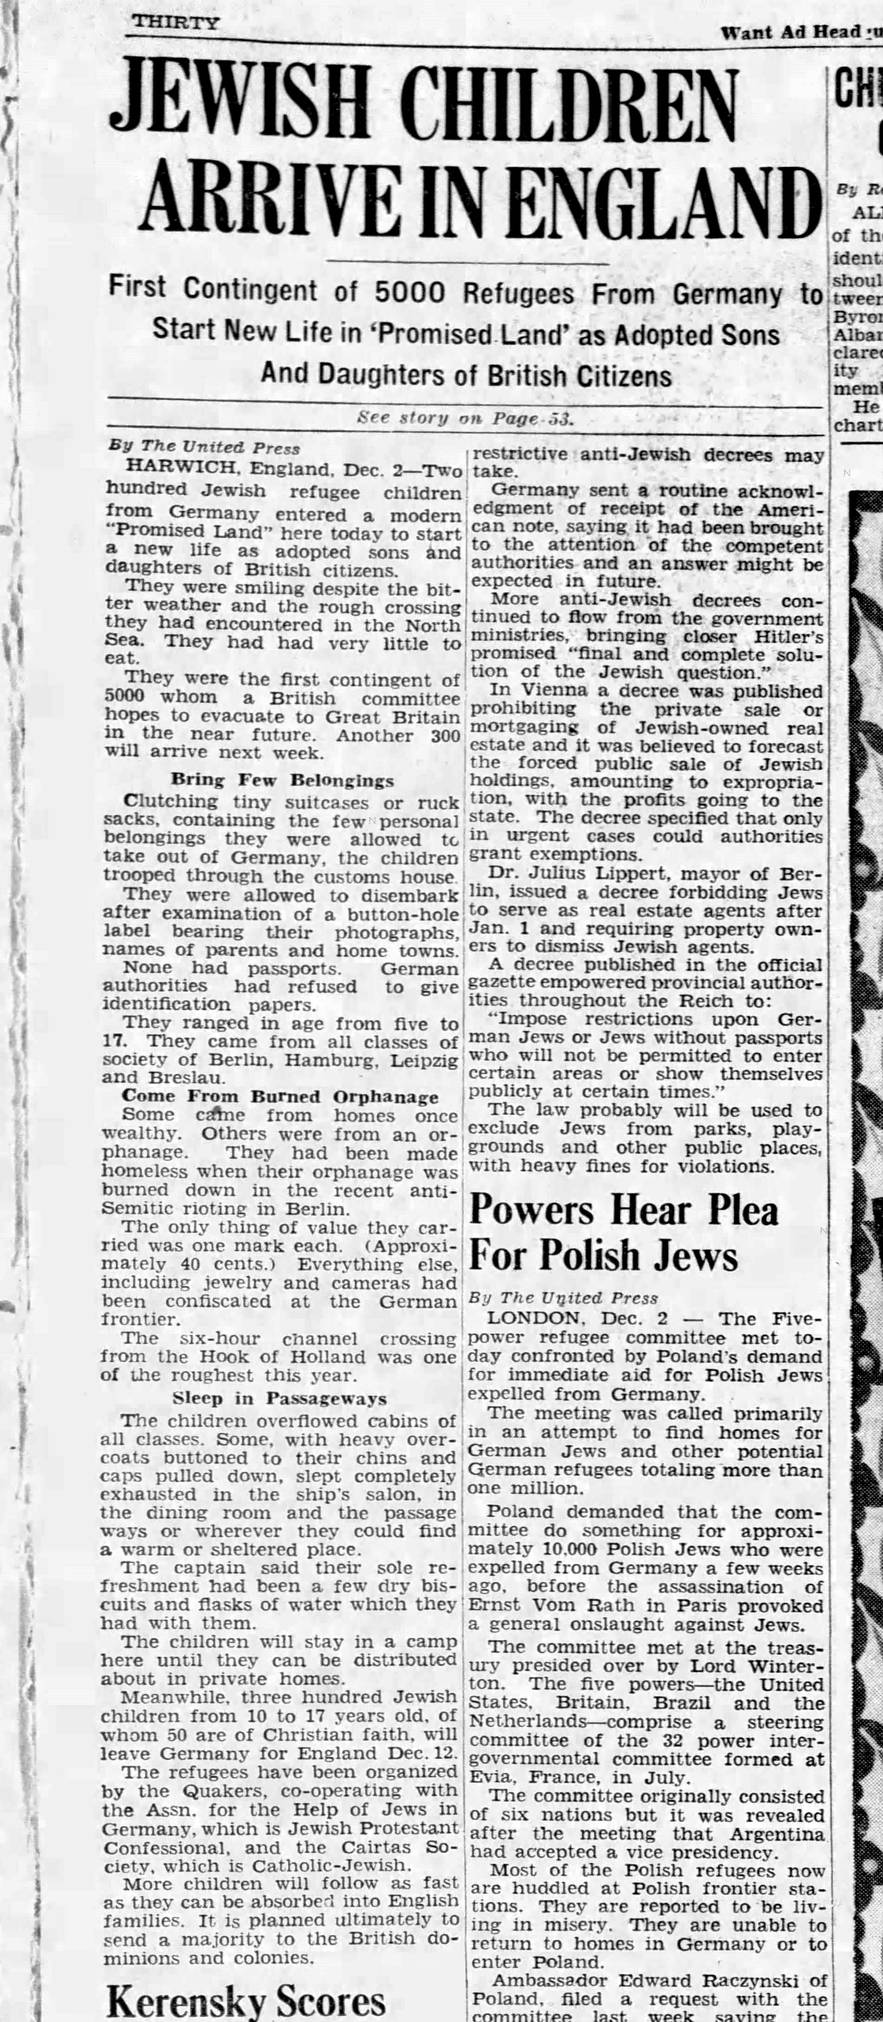 The_Pittsburgh_Press_Fri__Dec_2__1938_-Kindertransport-article.jpg